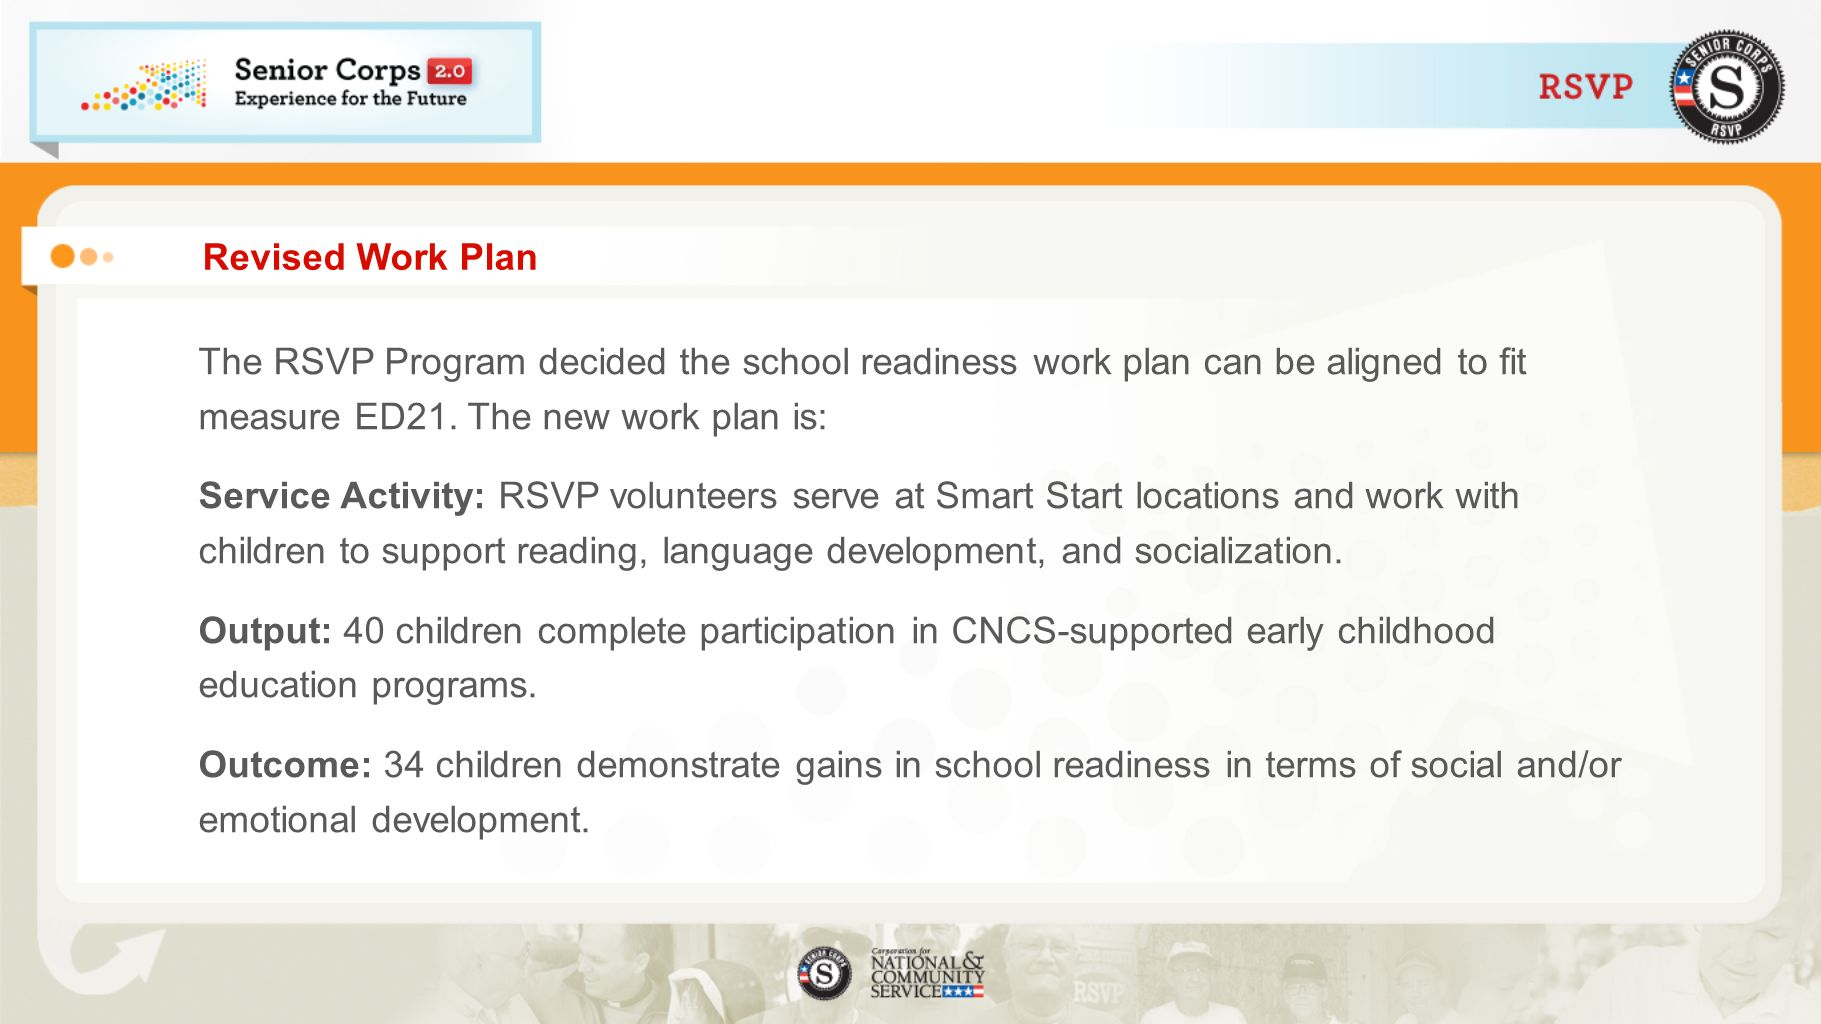 Revised Work PlanThe RSVP Program decided the school readiness work plan can be aligned to fit measure ED21. The new work plan is: